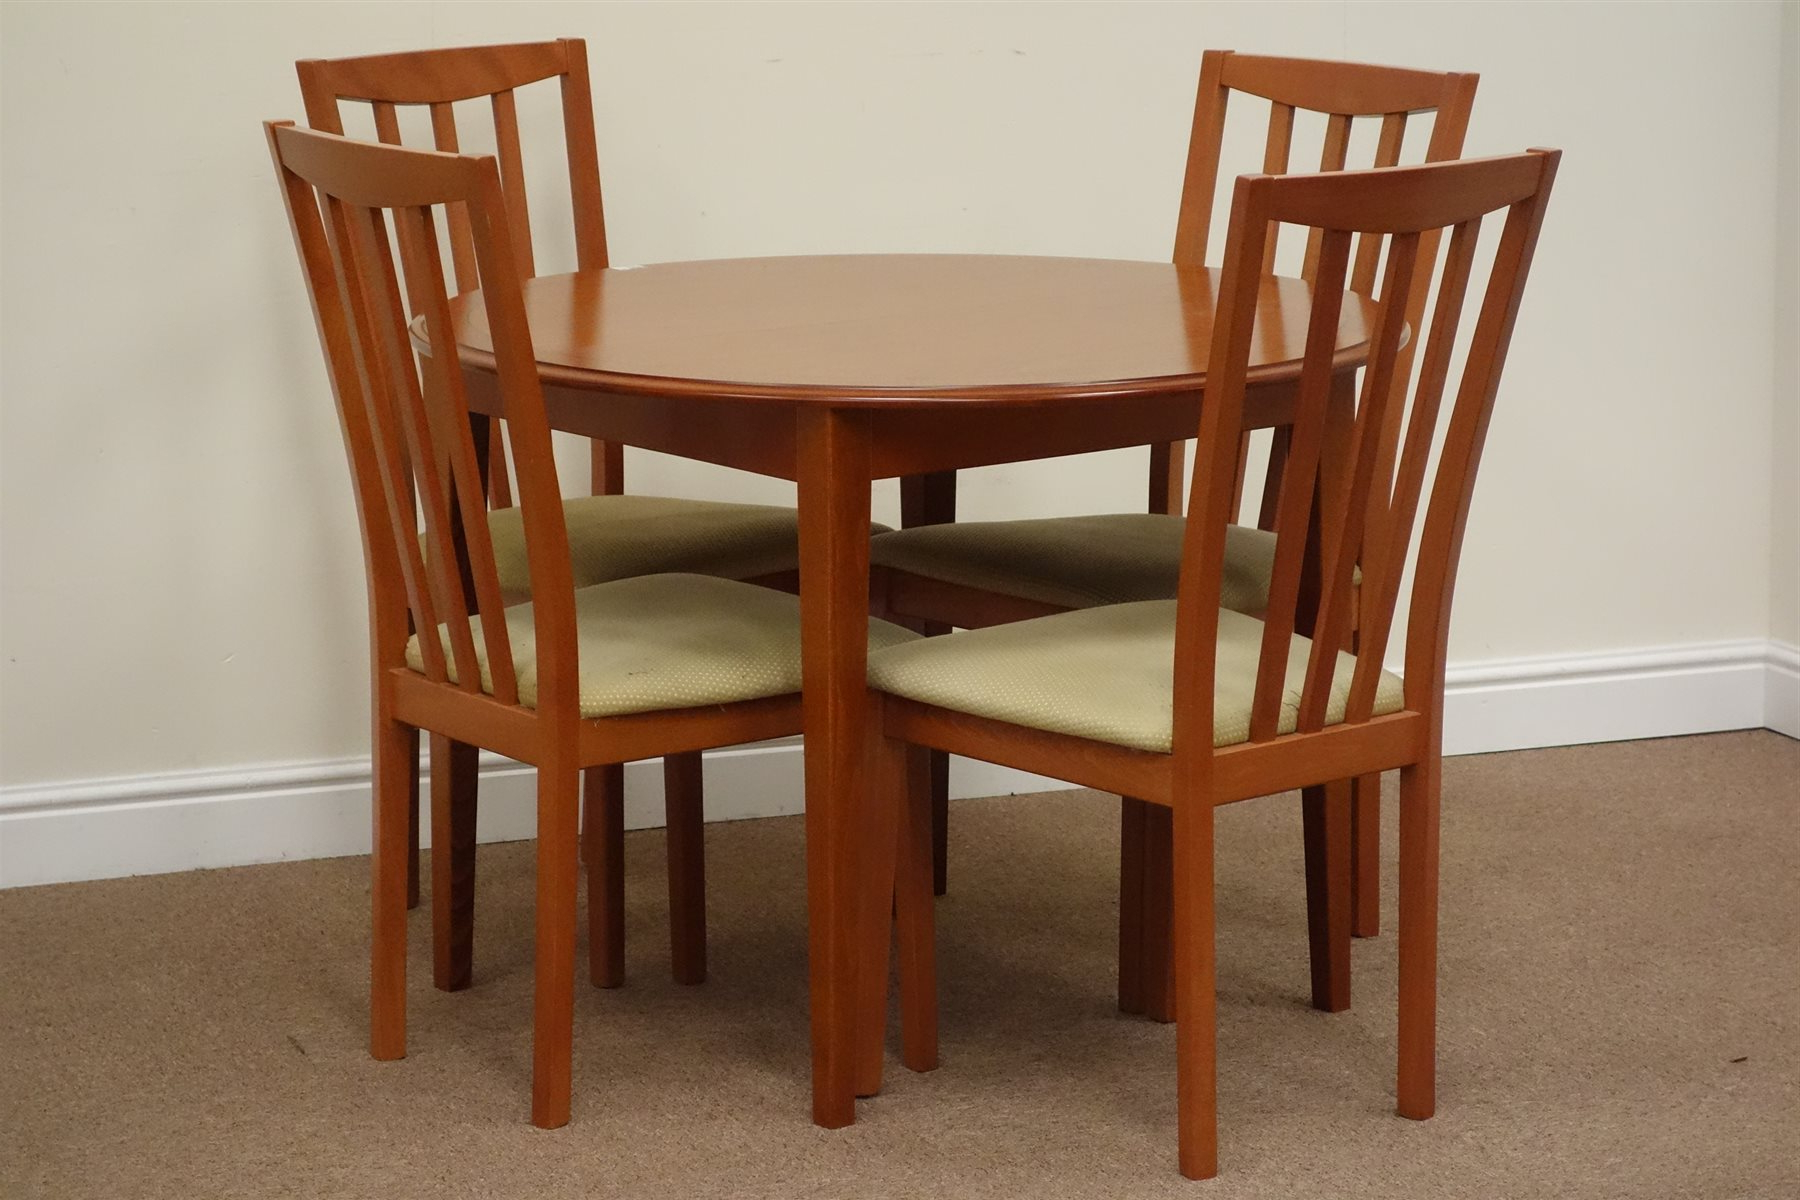 Morris Circular Cherry Wood Extending Dining Table With Fold With Regard To Most Recently Released Morris Round Dining Tables (View 10 of 30)